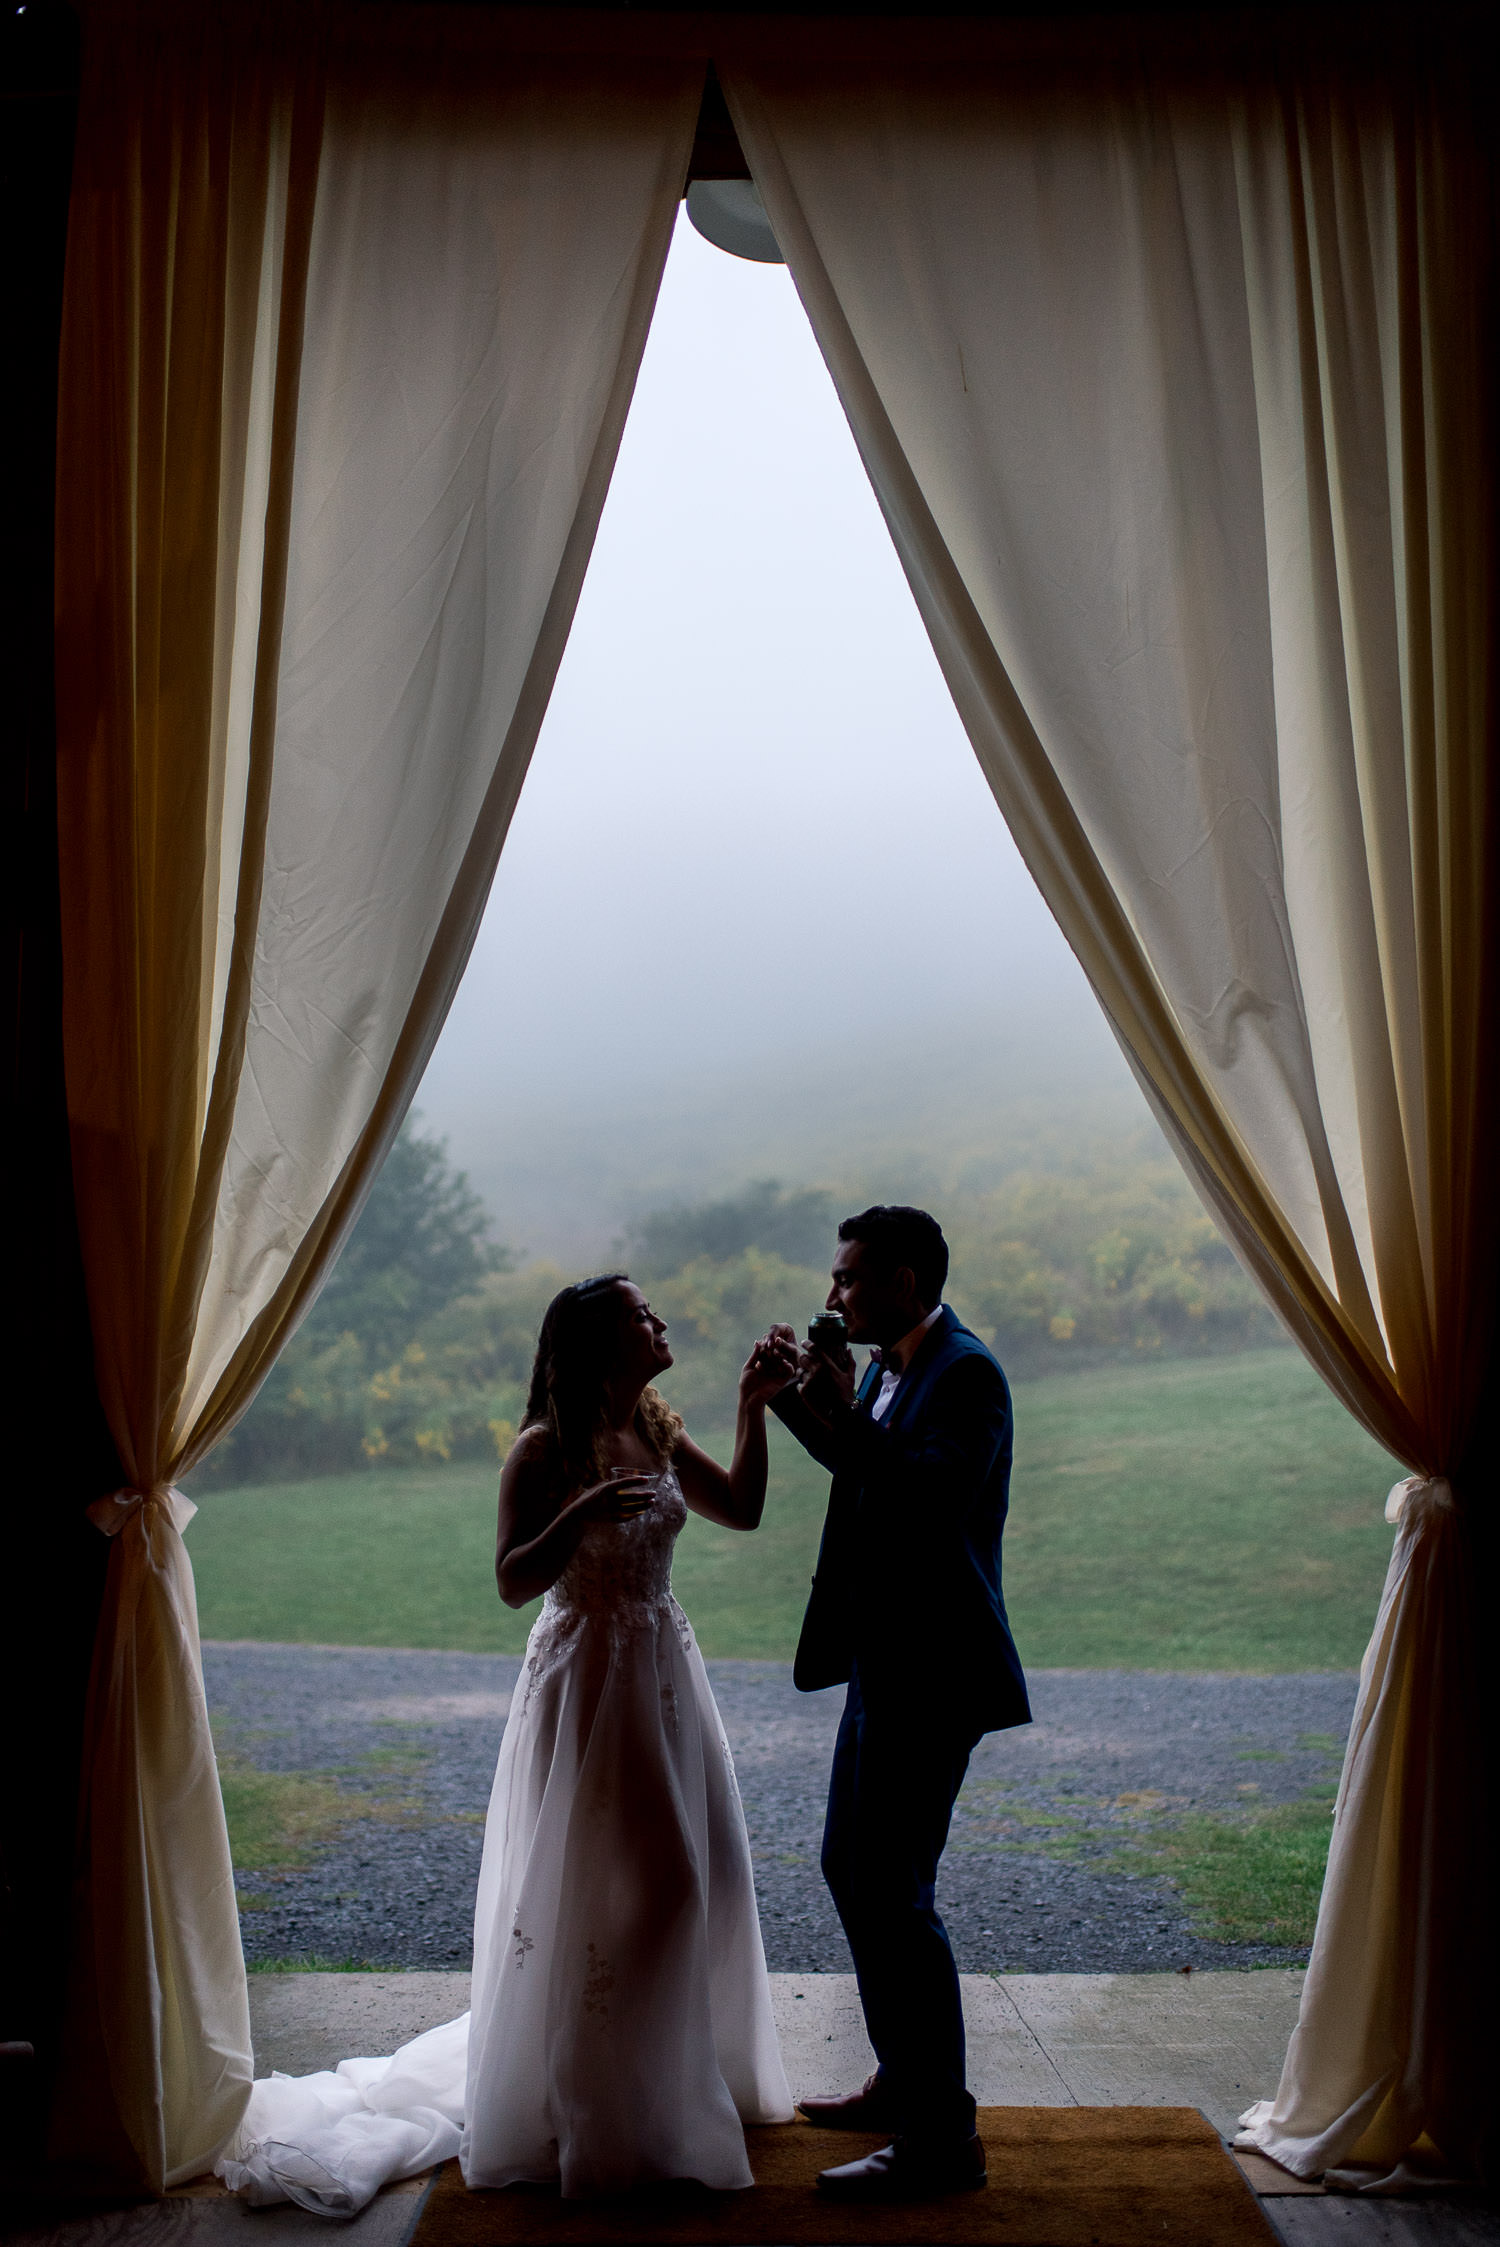 silhouette of bride and groom dancing in doorway